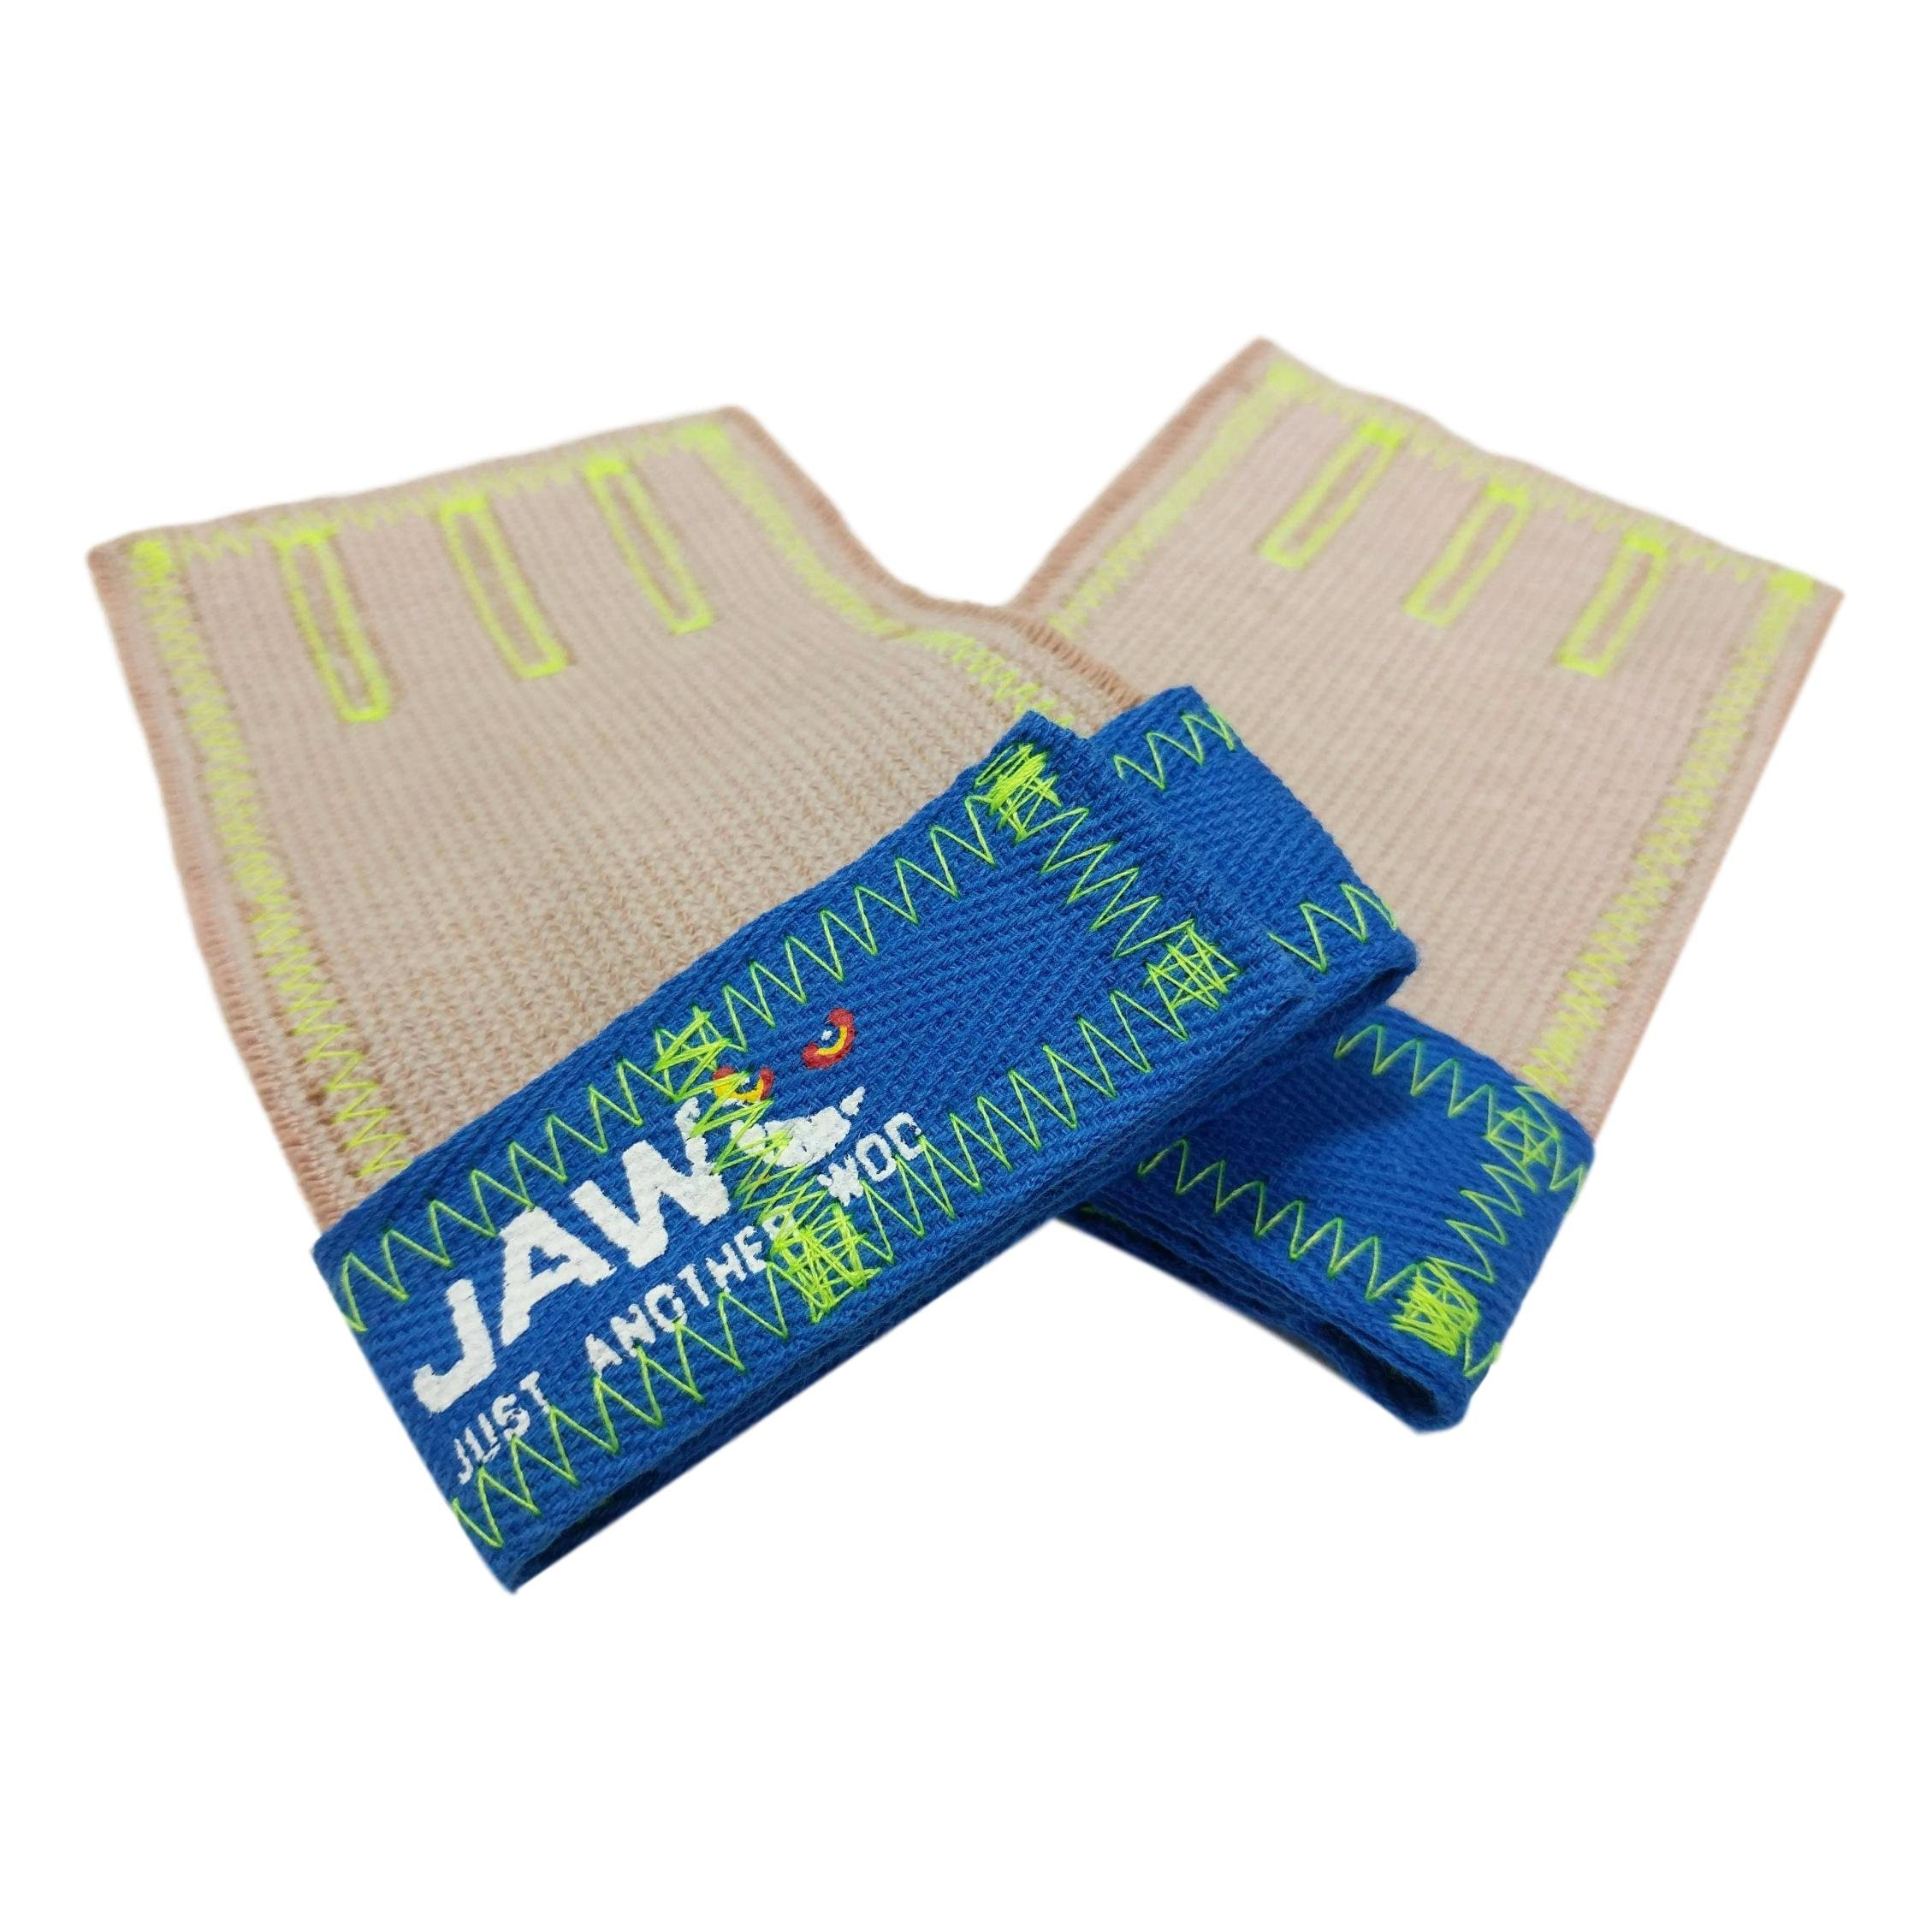 JAW Three's Hand Grips (Blue, Small)